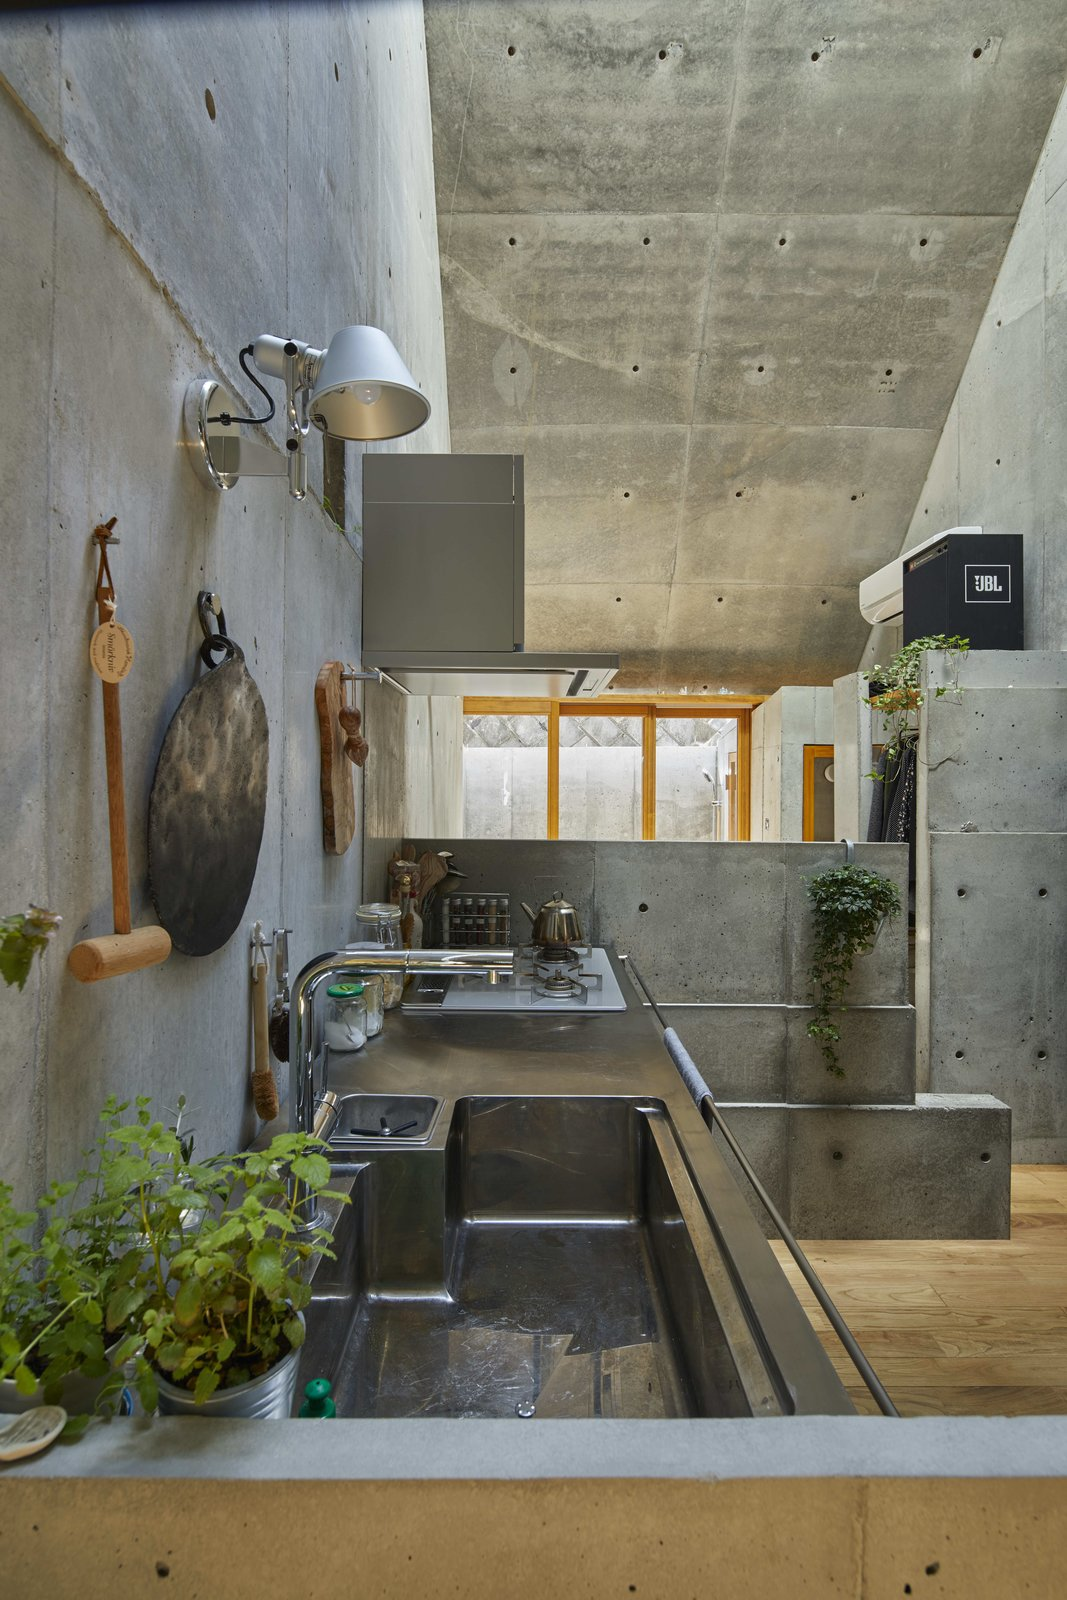 Kitchen, Medium Hardwood, Concrete, Wall, Range, Undermount, and Concrete The interior maintains a sense of texture from the concrete that isn't overwhelming because of the wood floors and high ceilings.  Best Kitchen Range Concrete Concrete Photos from A Concrete Tiny House in Tokyo Opens to the Sky—and the Street